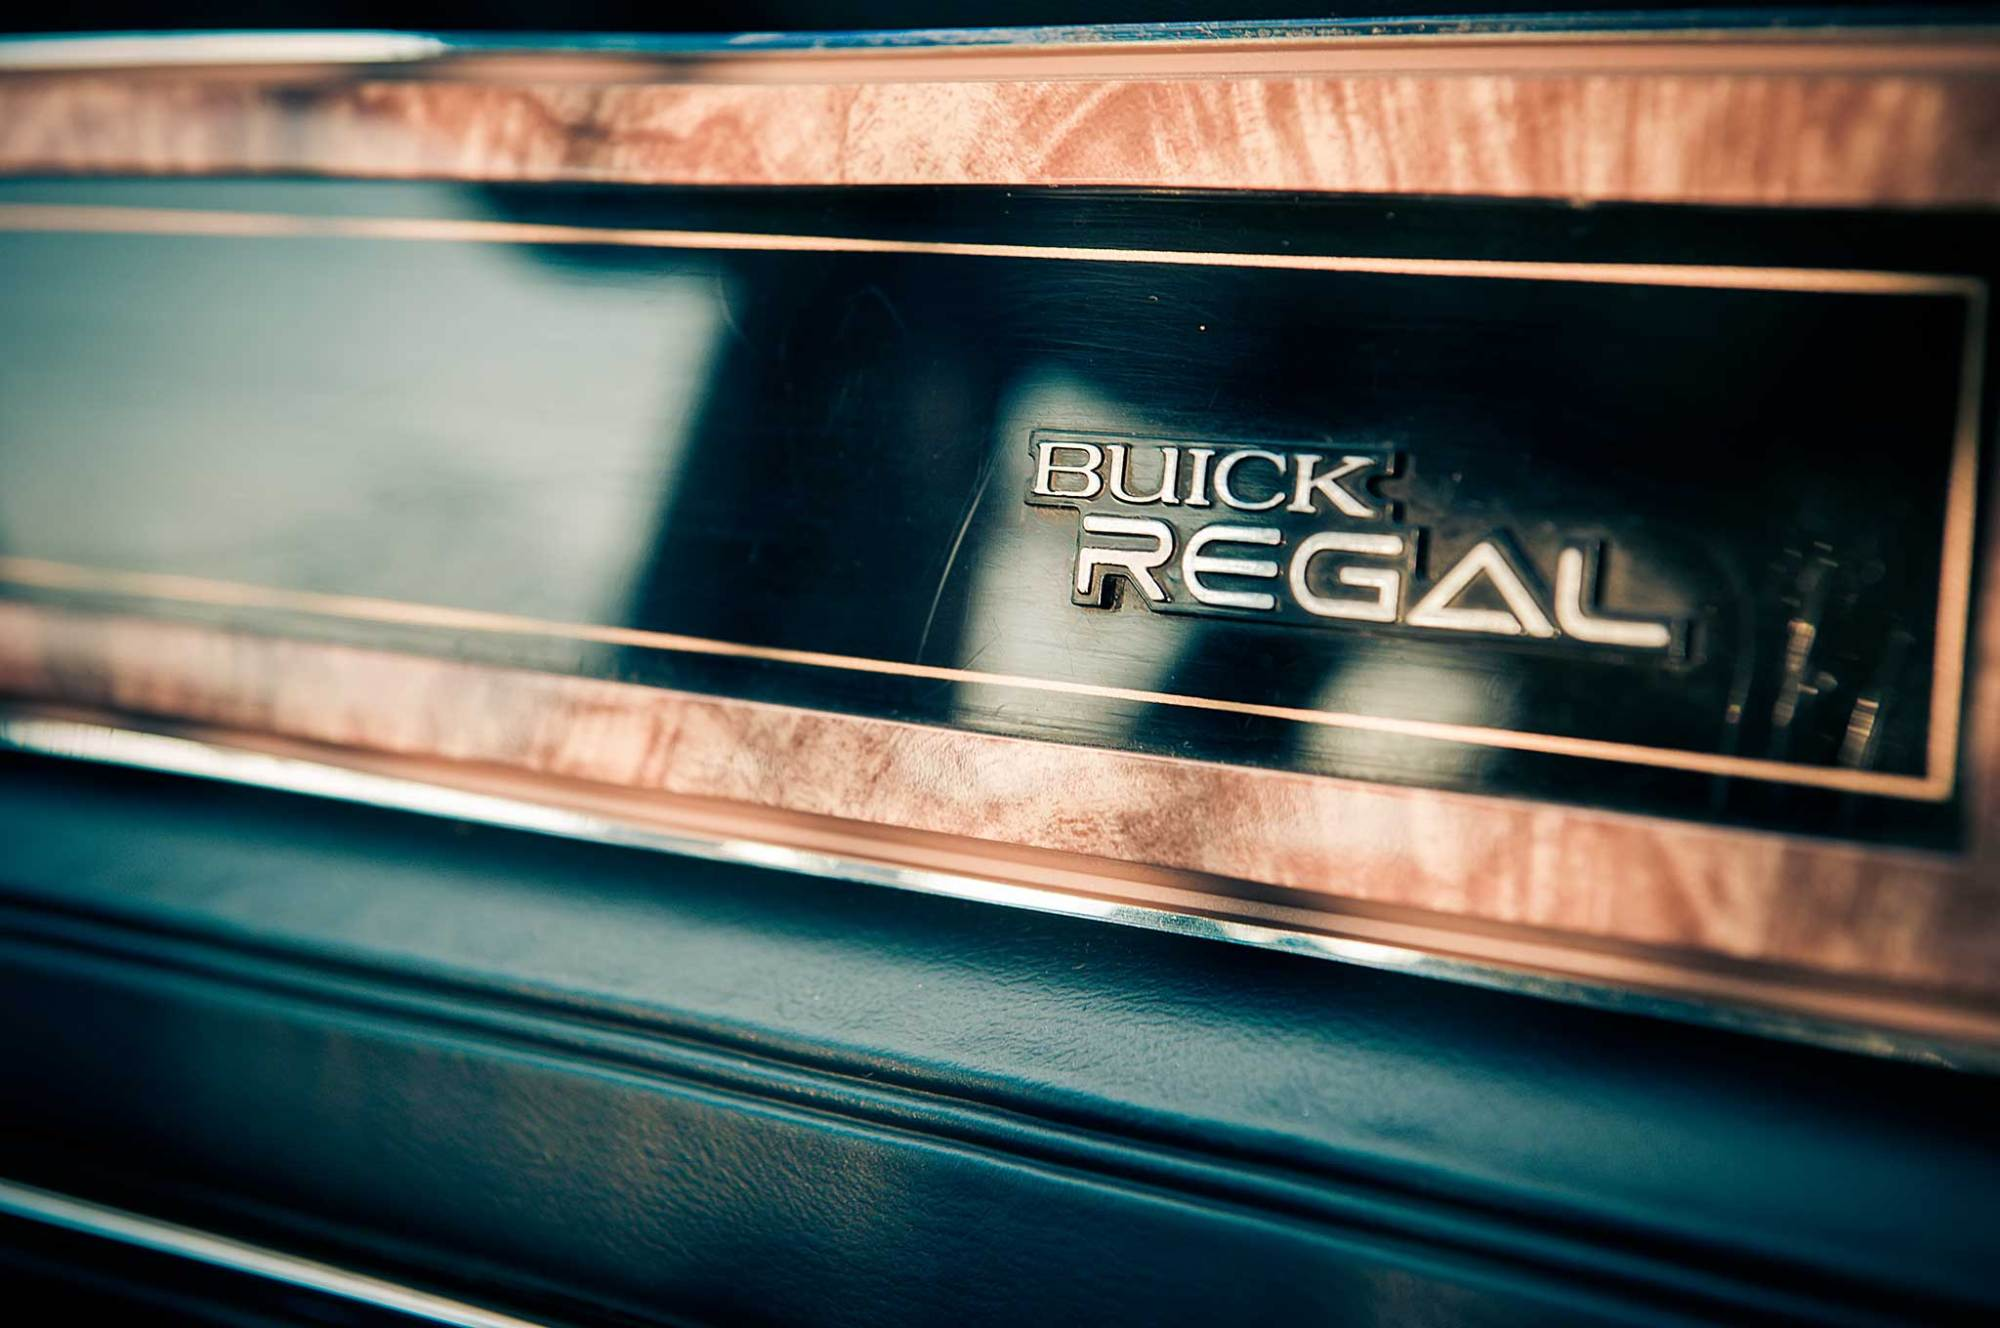 hight resolution of 1980 buick regal dashboard